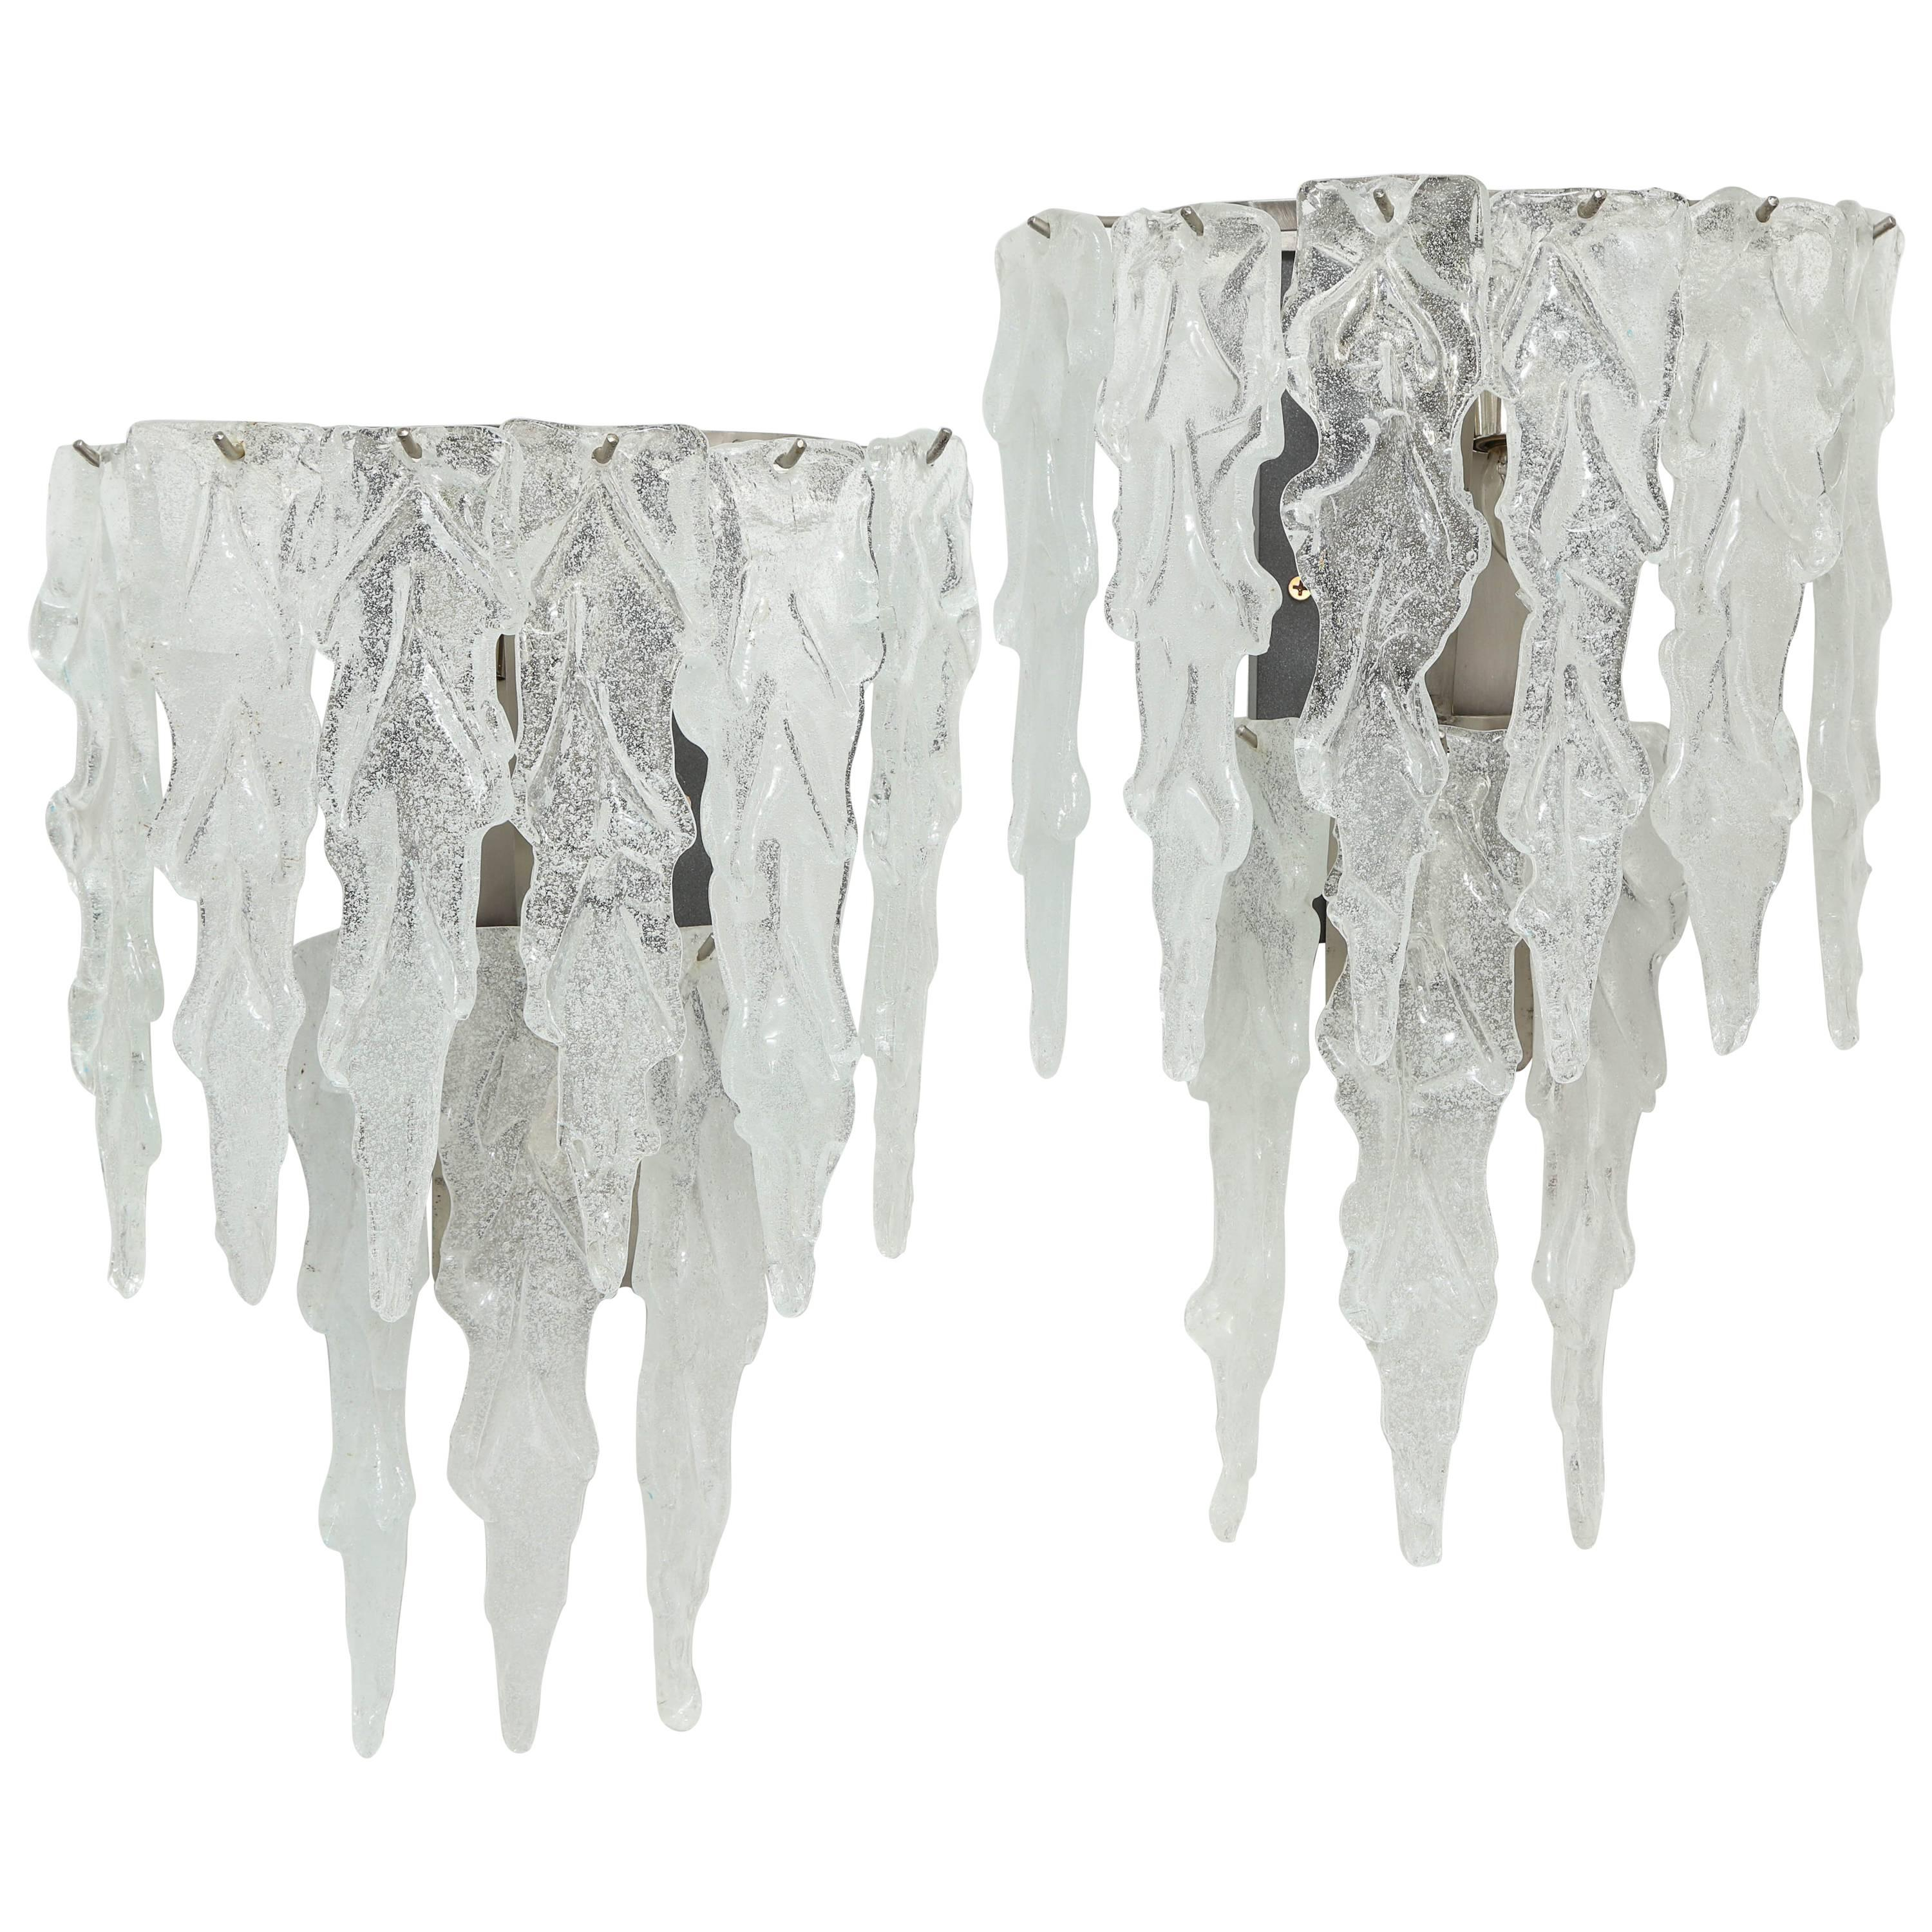 Pair of Murano Icicle Glass Sconces